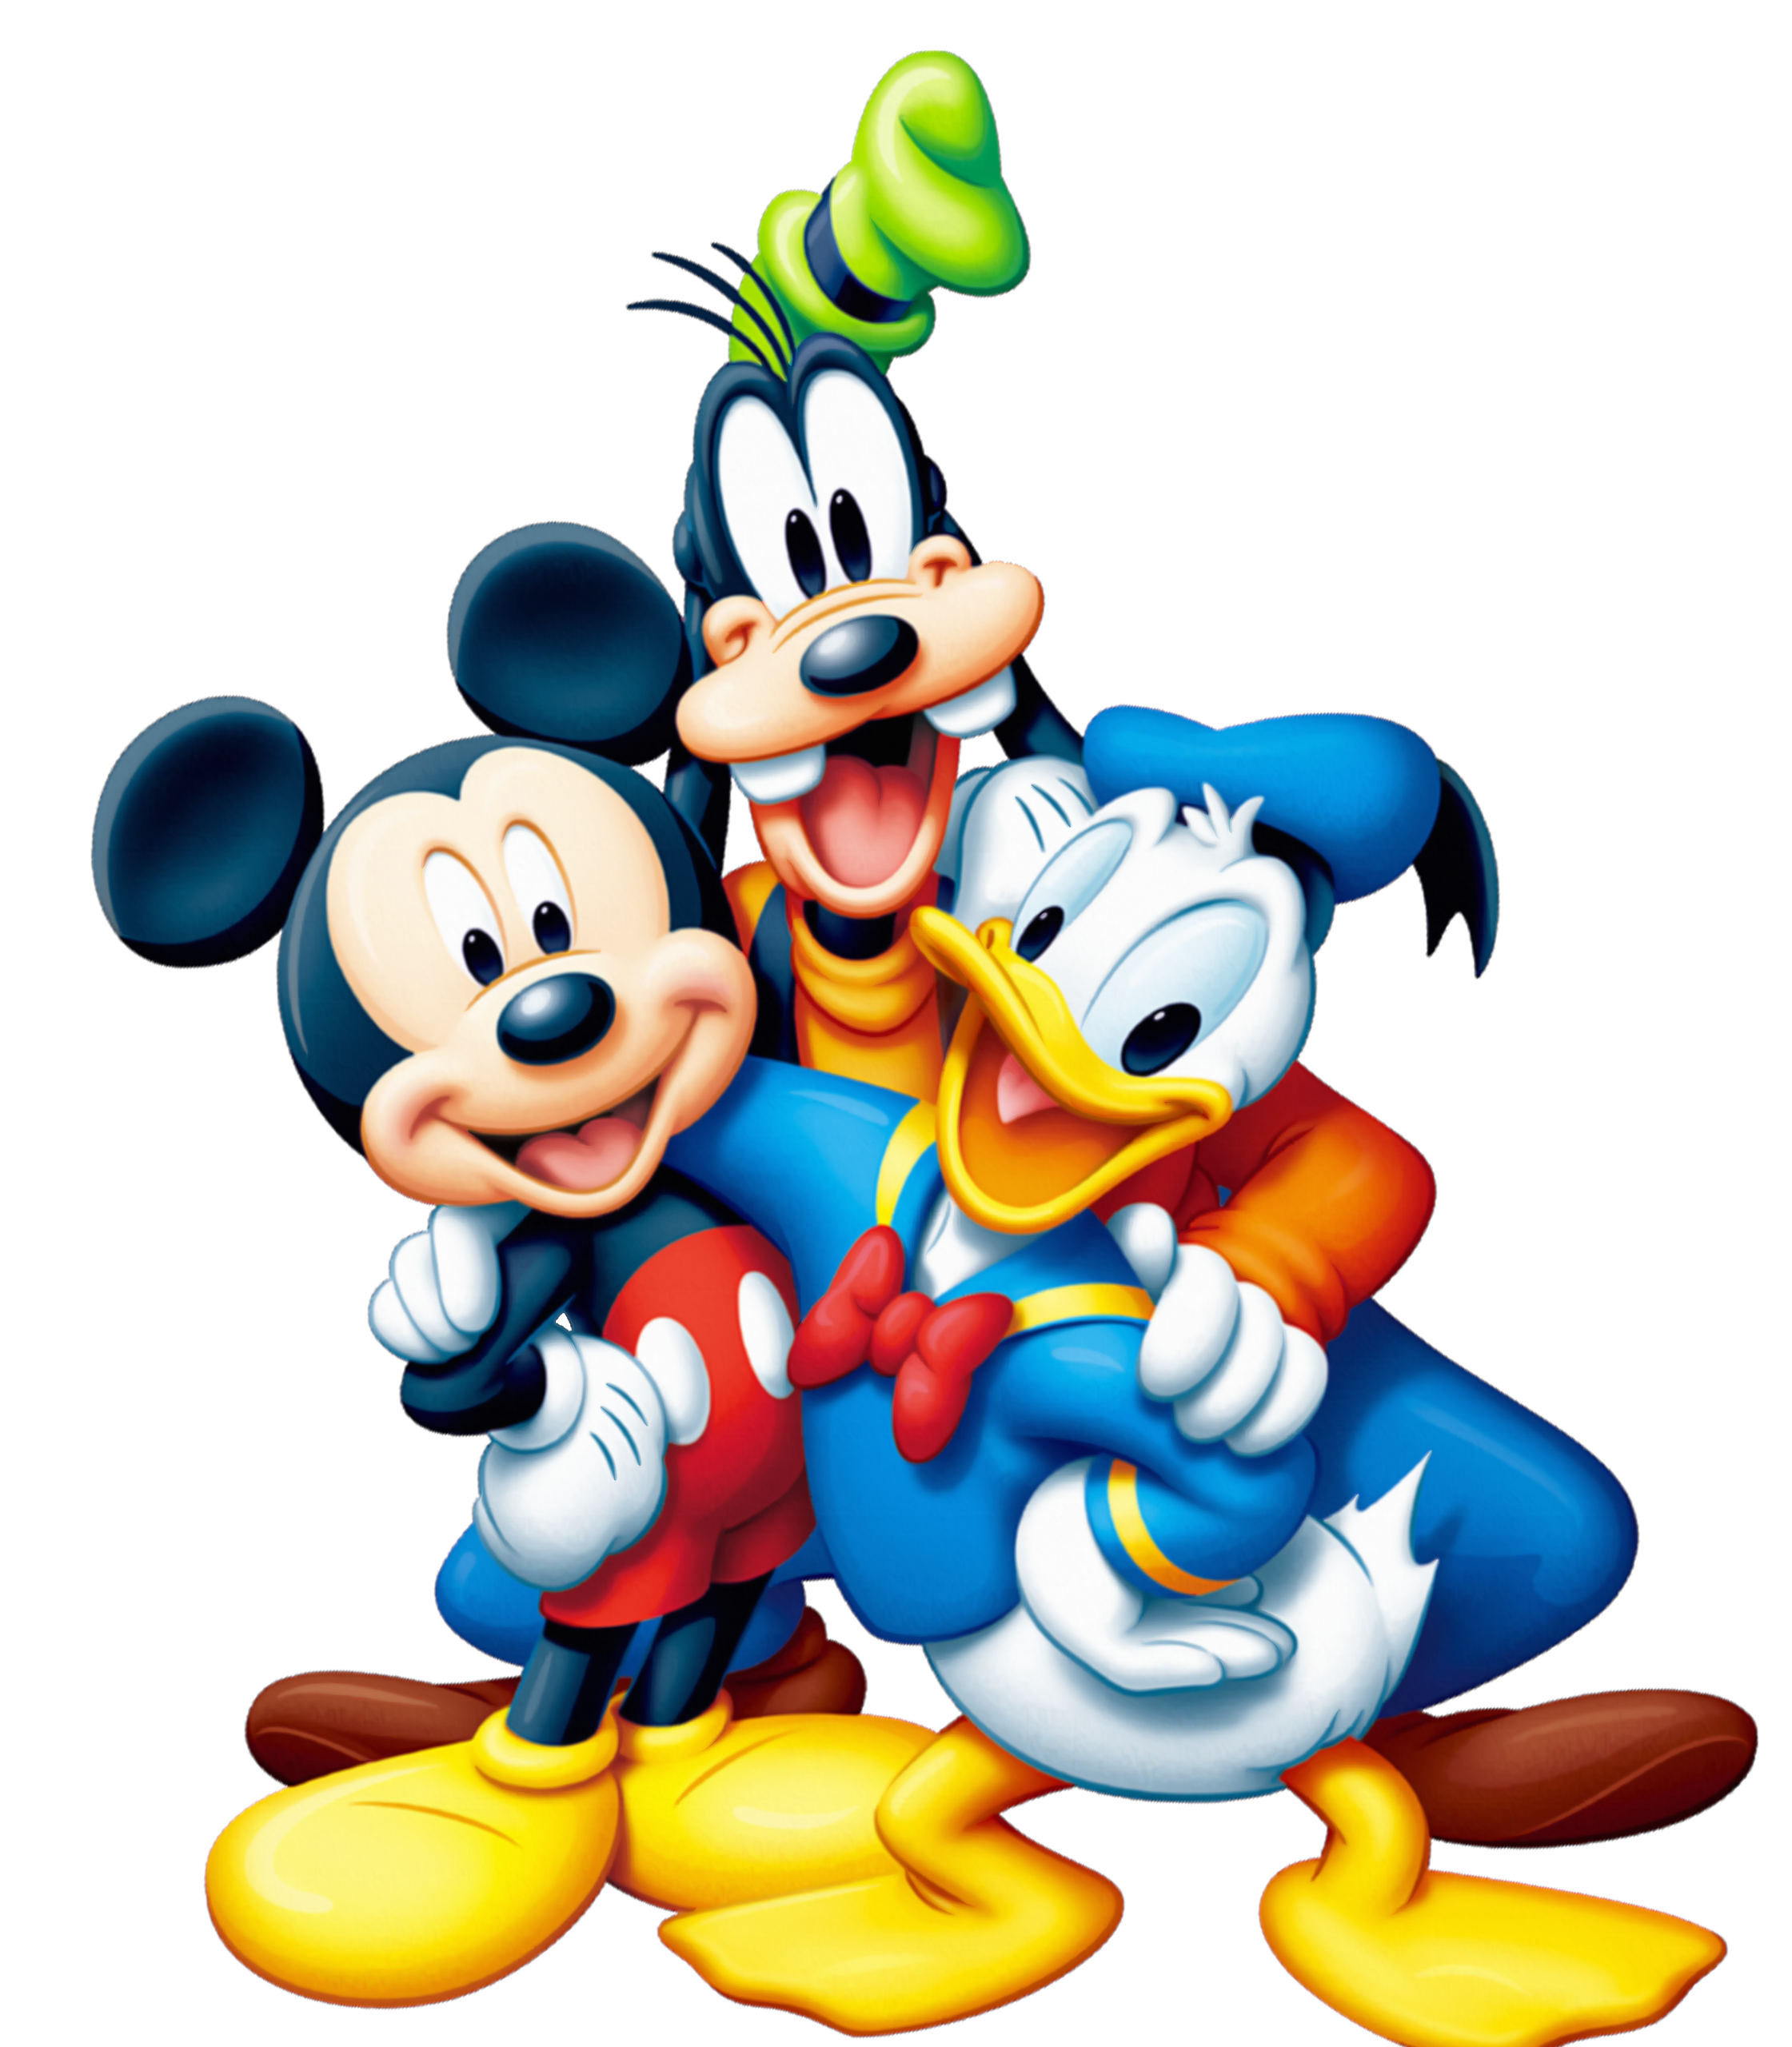 Mickey mouse and friends. Friendship clipart stick